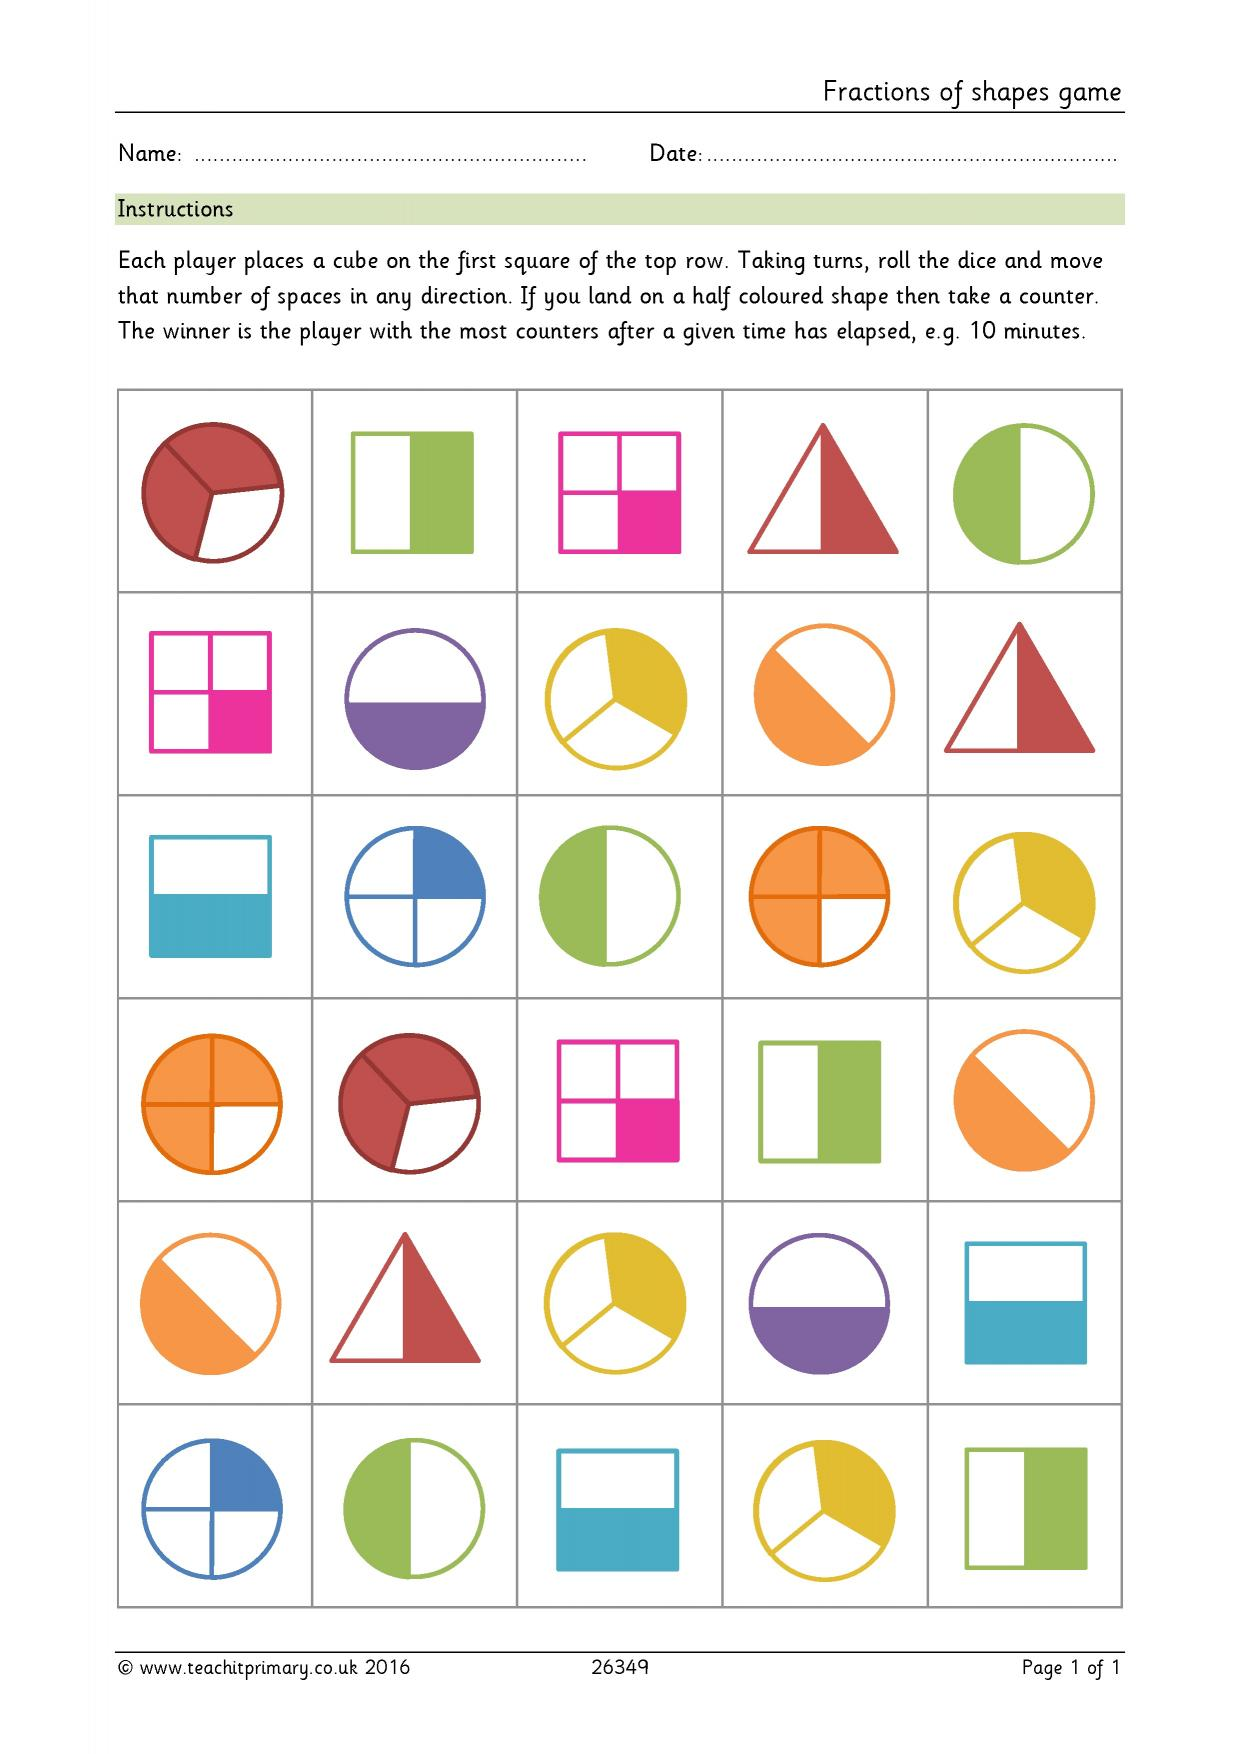 worksheet Shape Fractions eyfs ks1 ks2 basic fractions teachit primary 0 preview